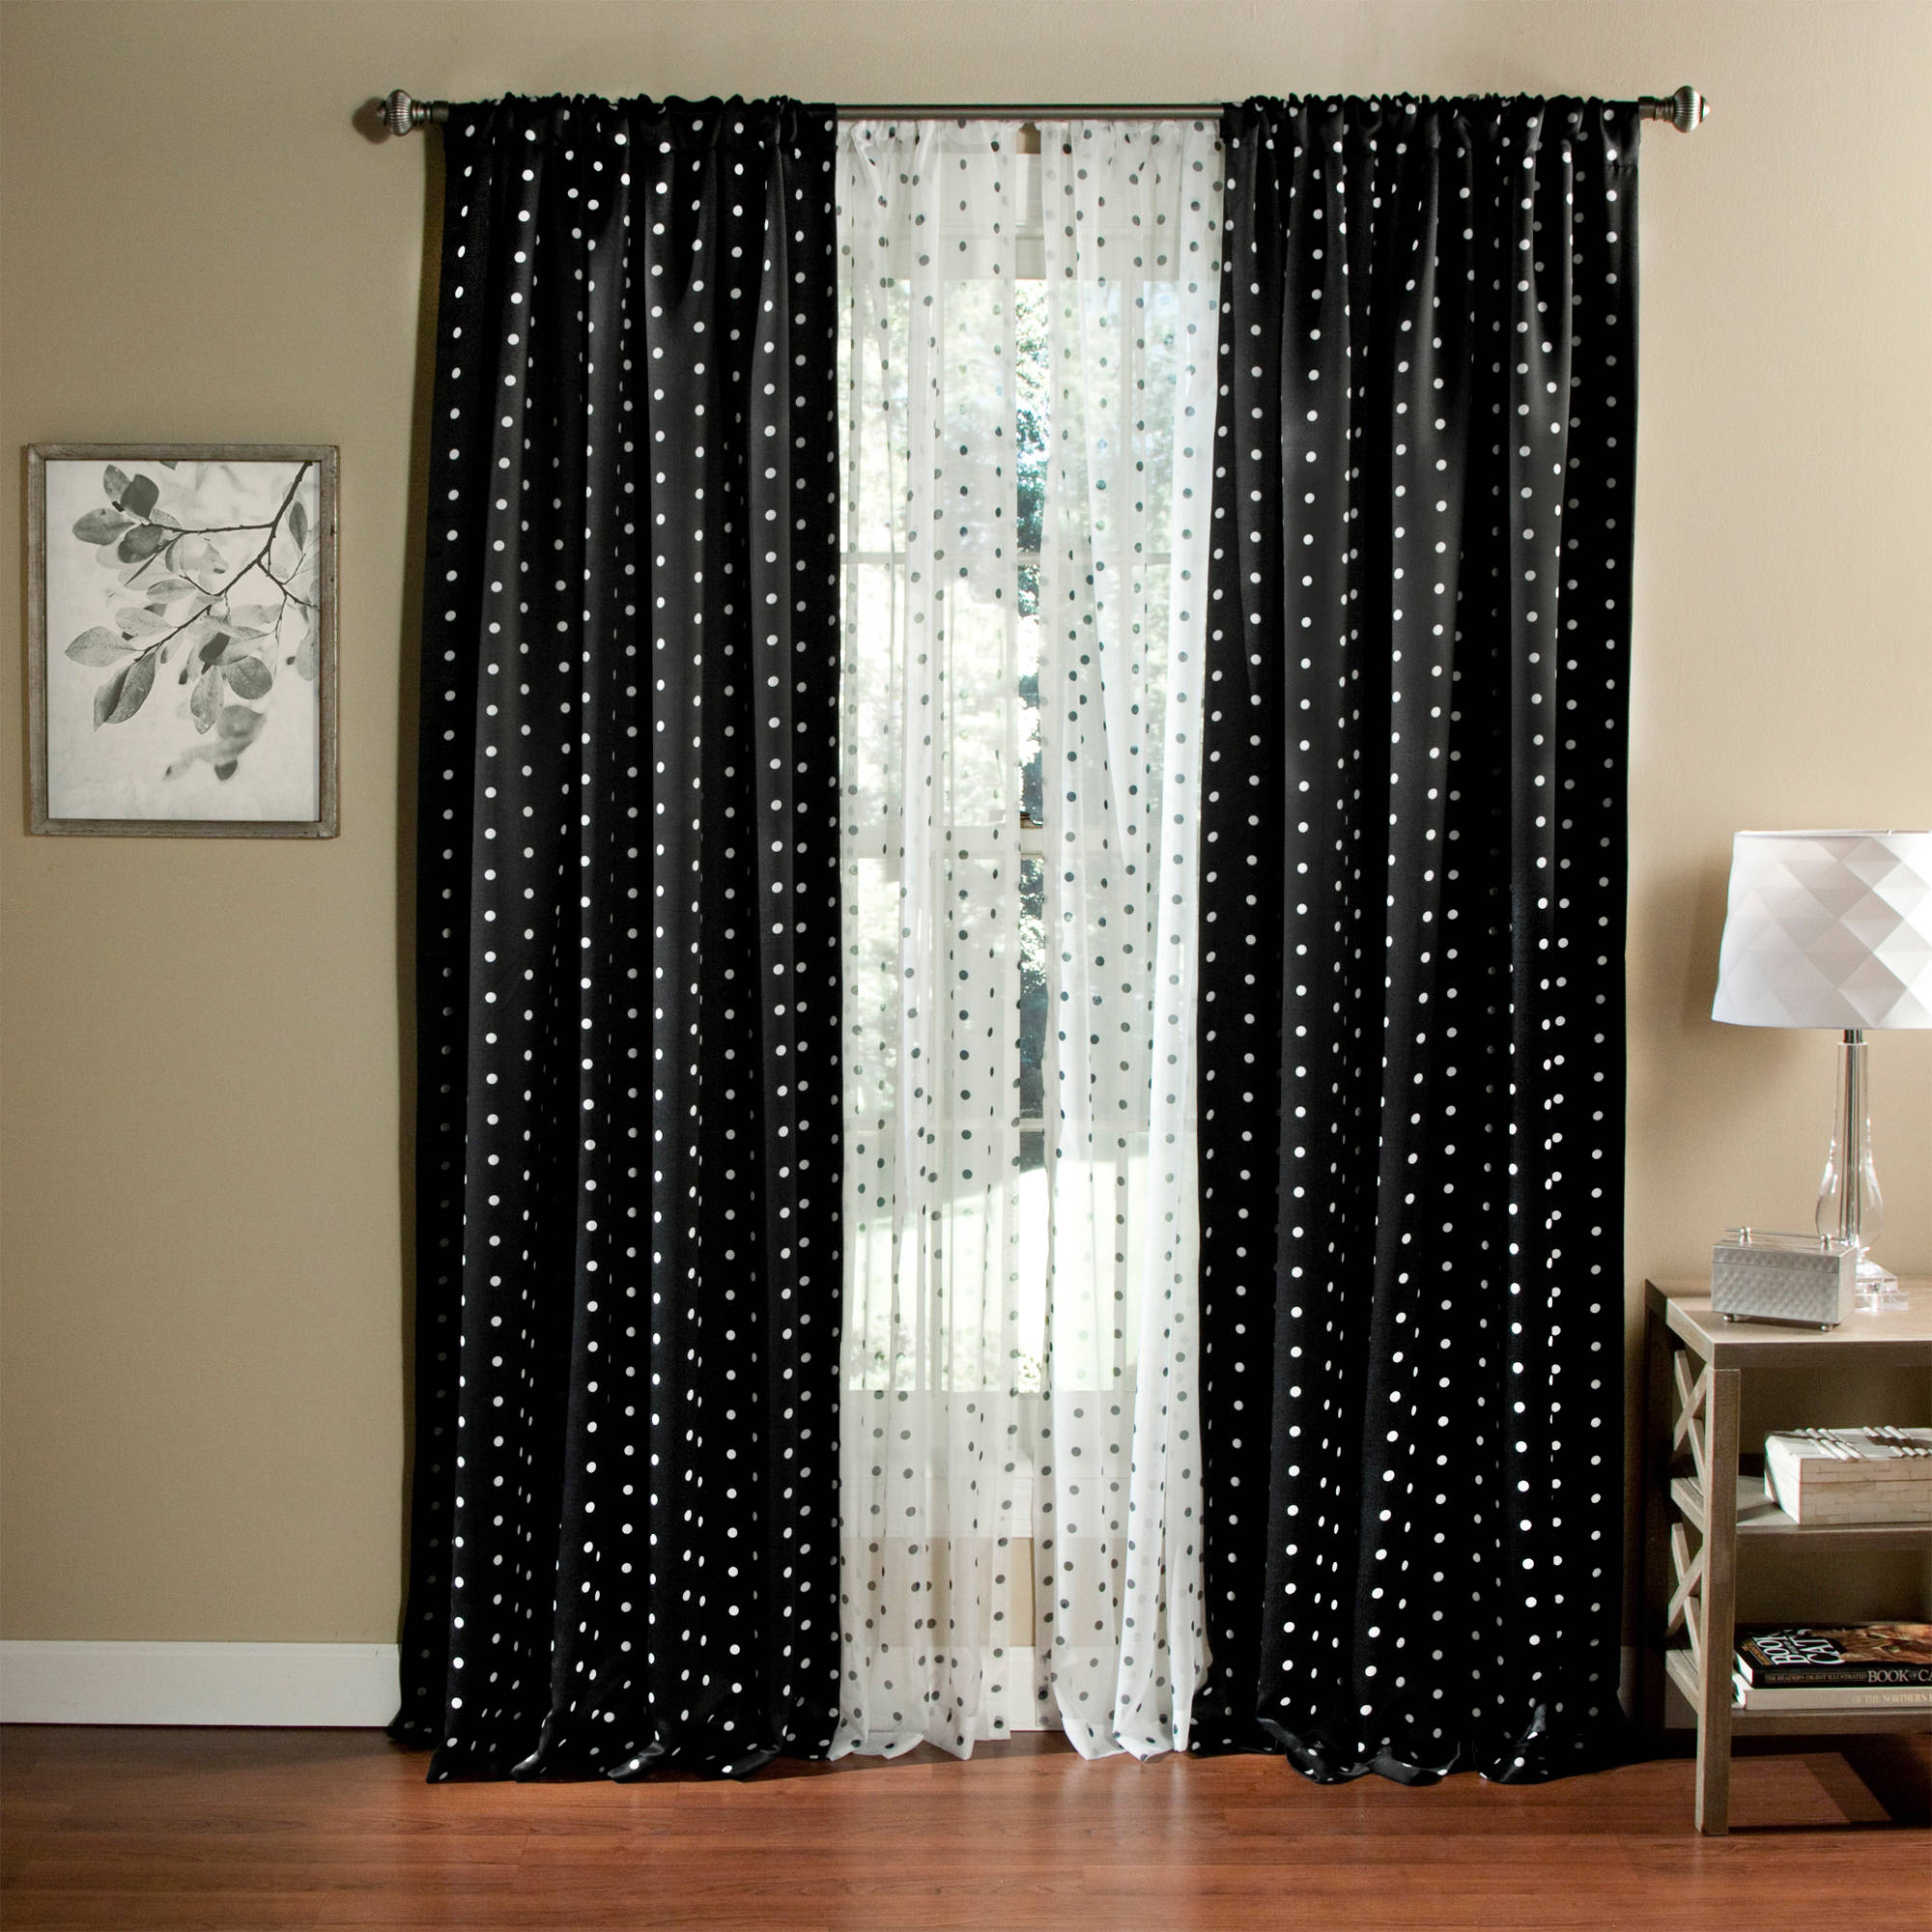 Black and white curtains - Black And White Curtains 4